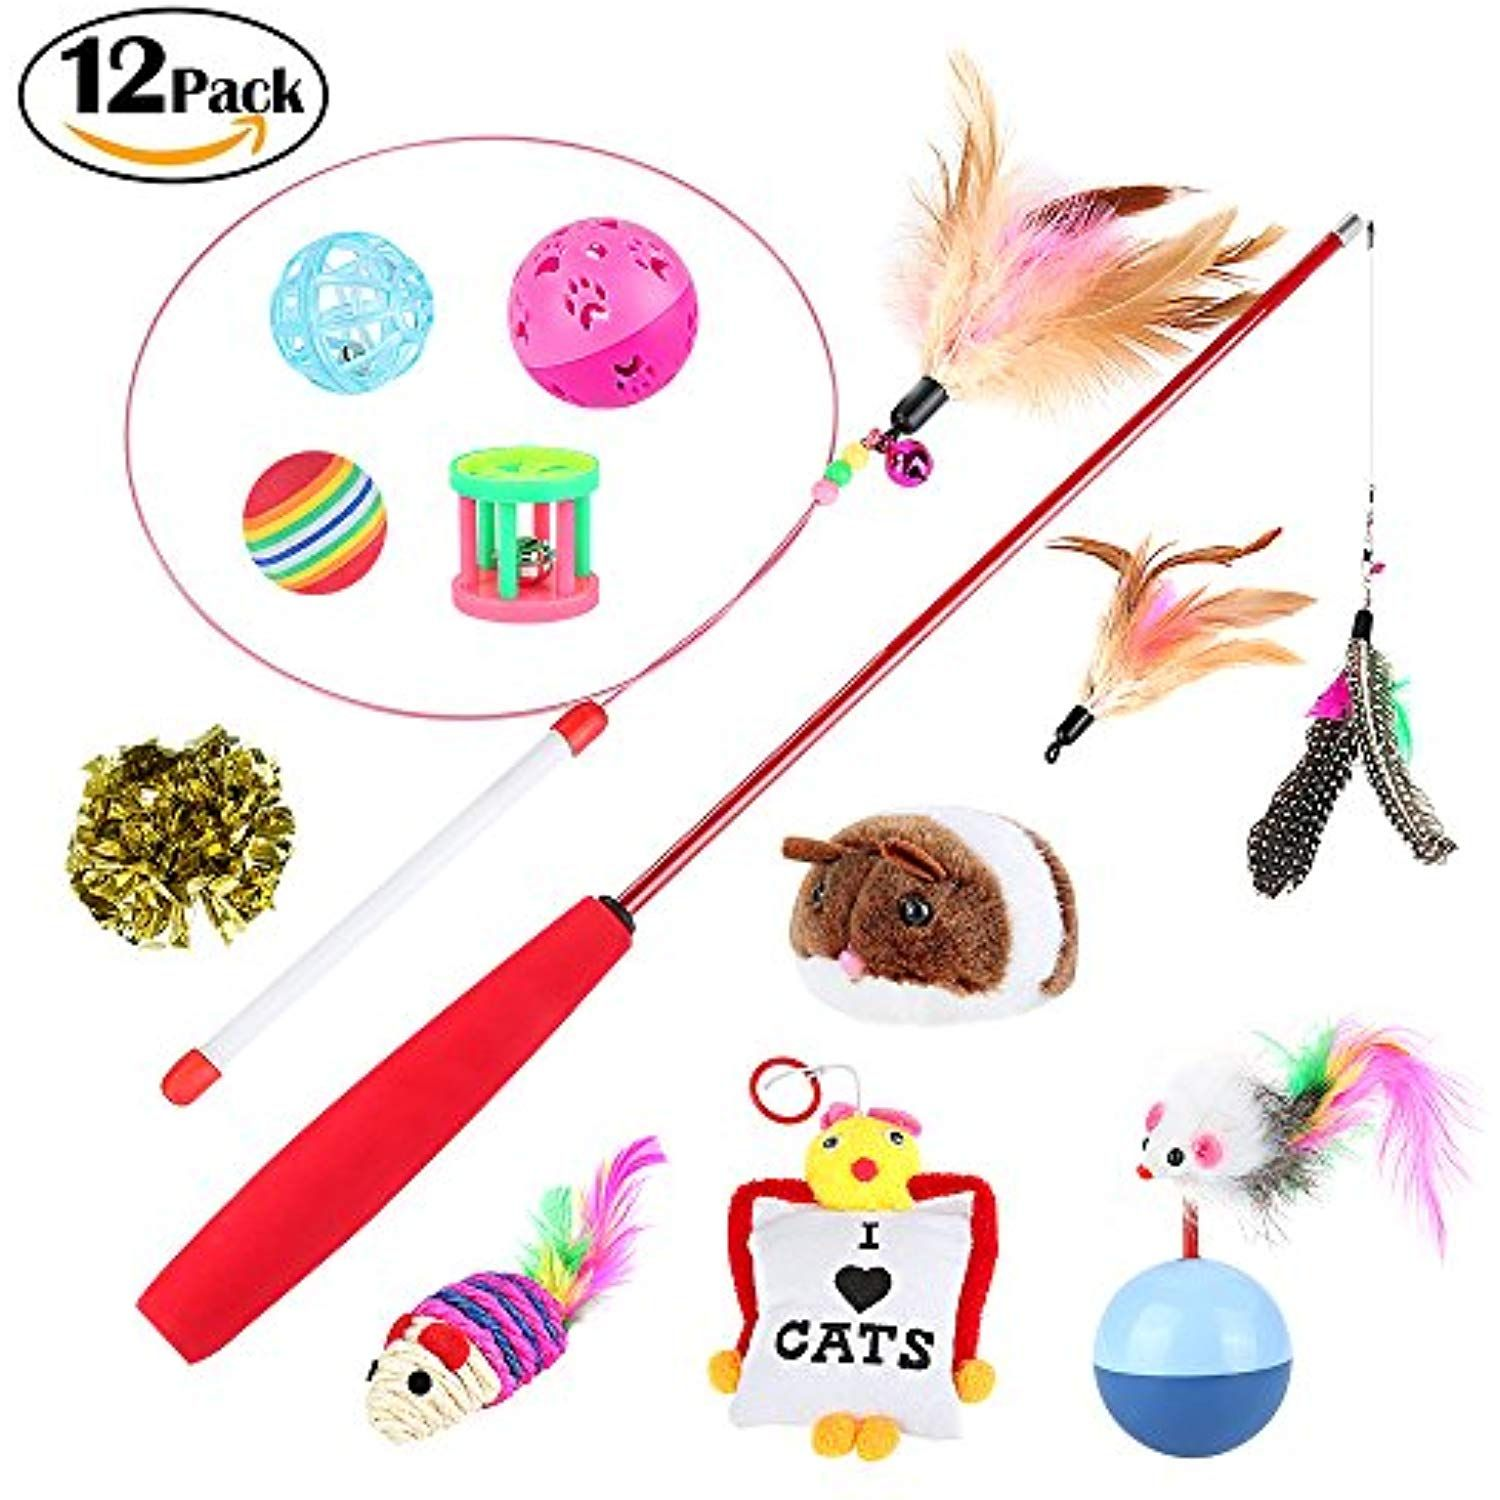 Cat Toys Variety 12 Pack Honfei Cat Toys Including Whiffle Ball